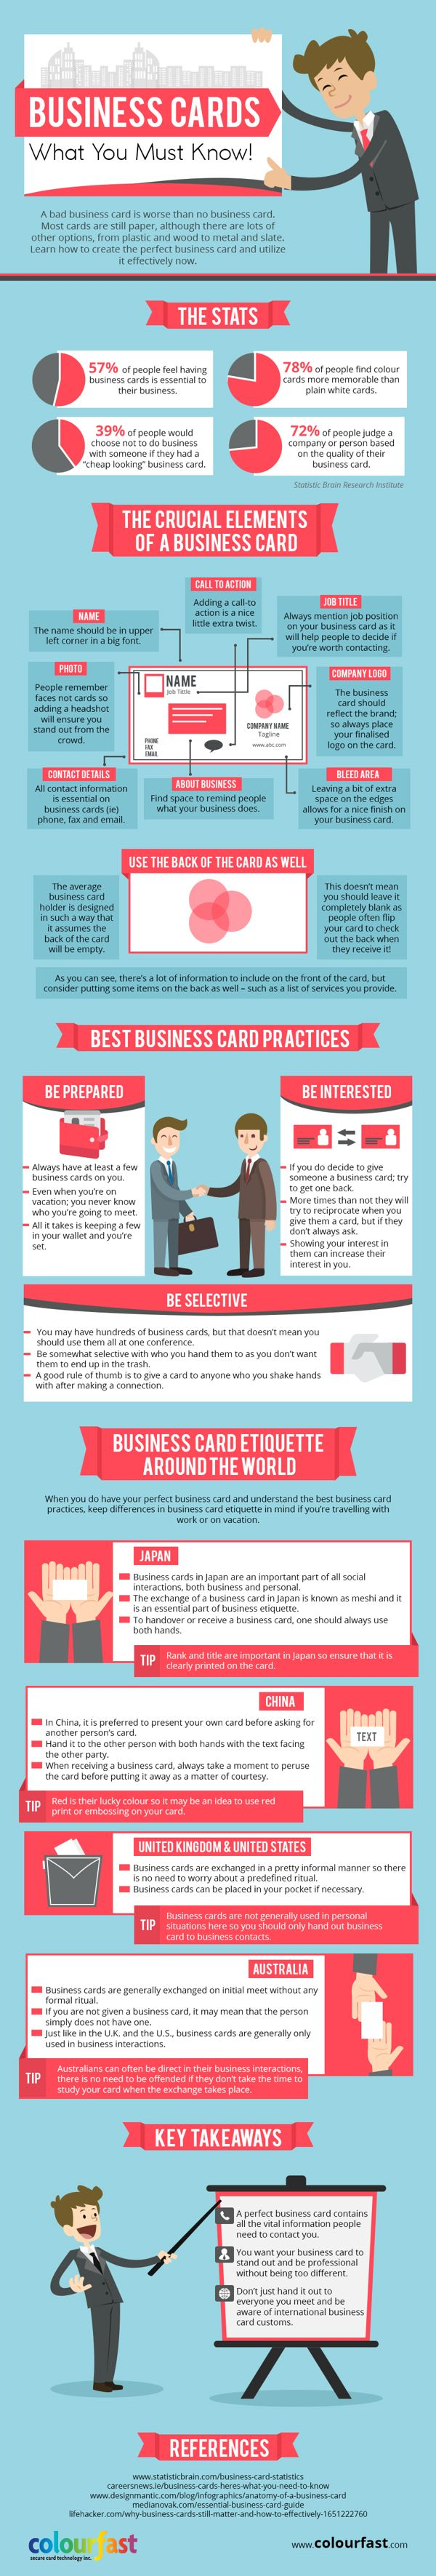 Business Cards – What You Must Know 1